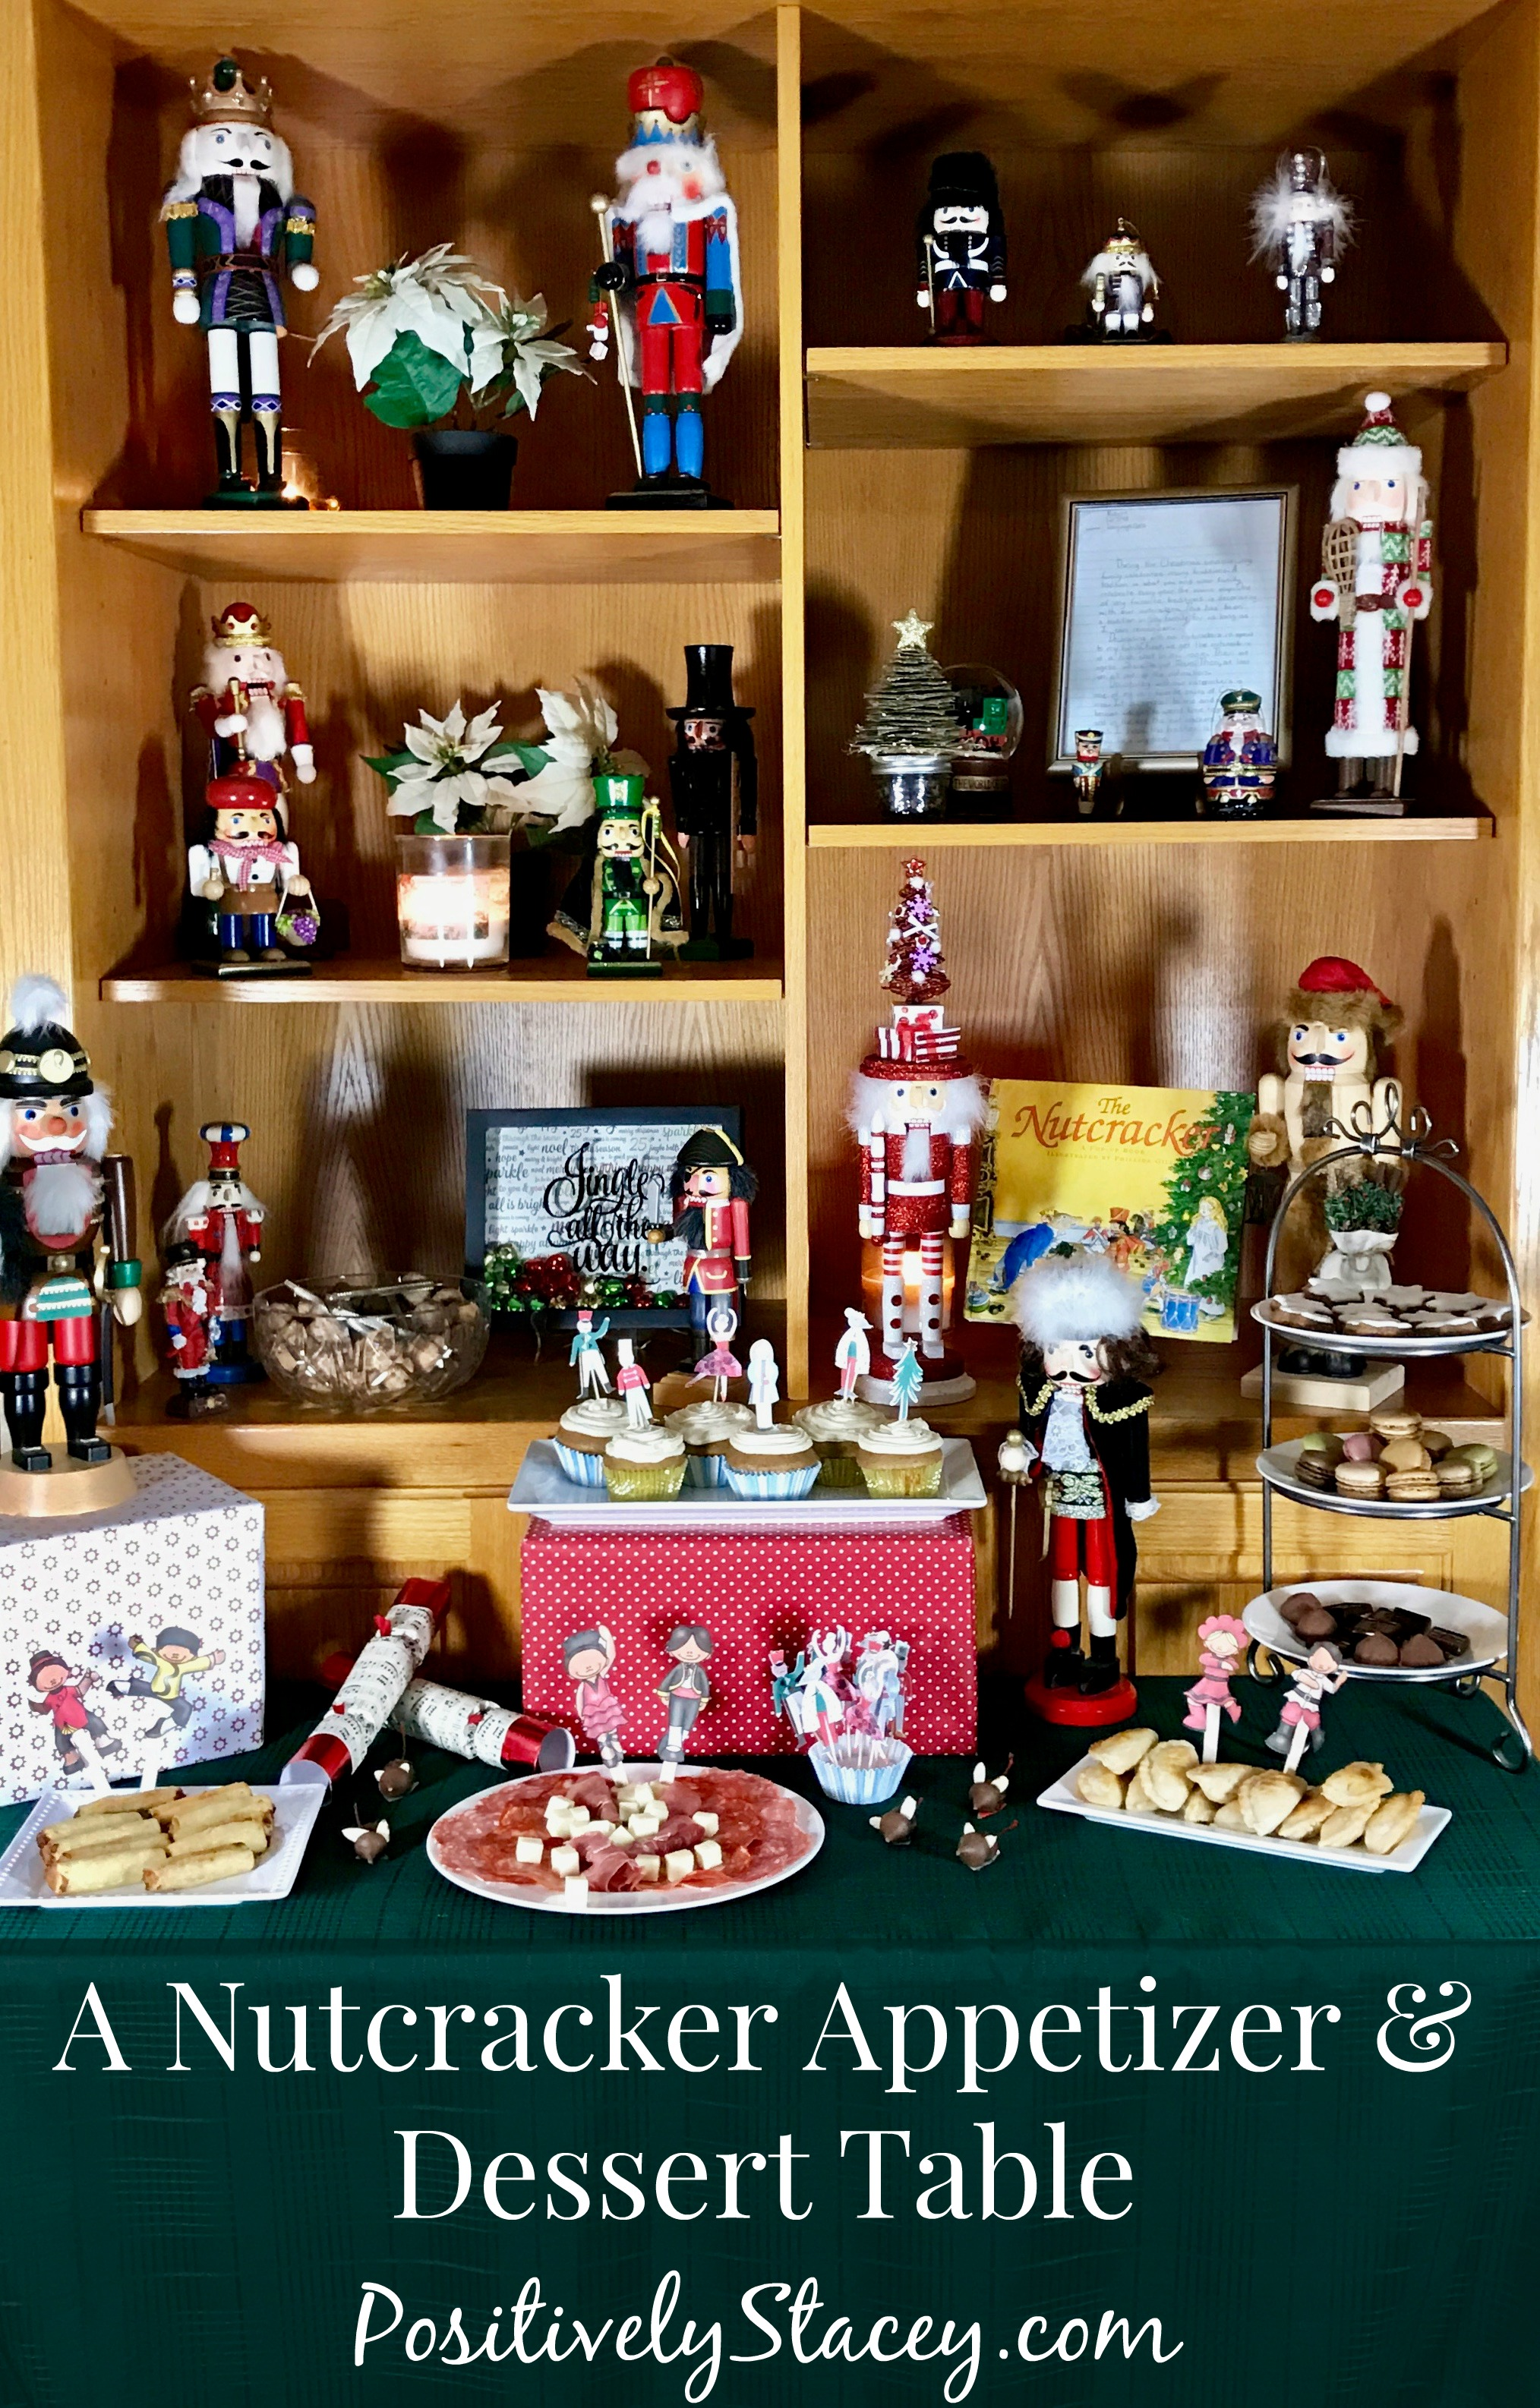 This is the perfect Nutcracker Appetizer and Dessert Table to set up. This buffet offers both bite sized savory and sweet finger foods.